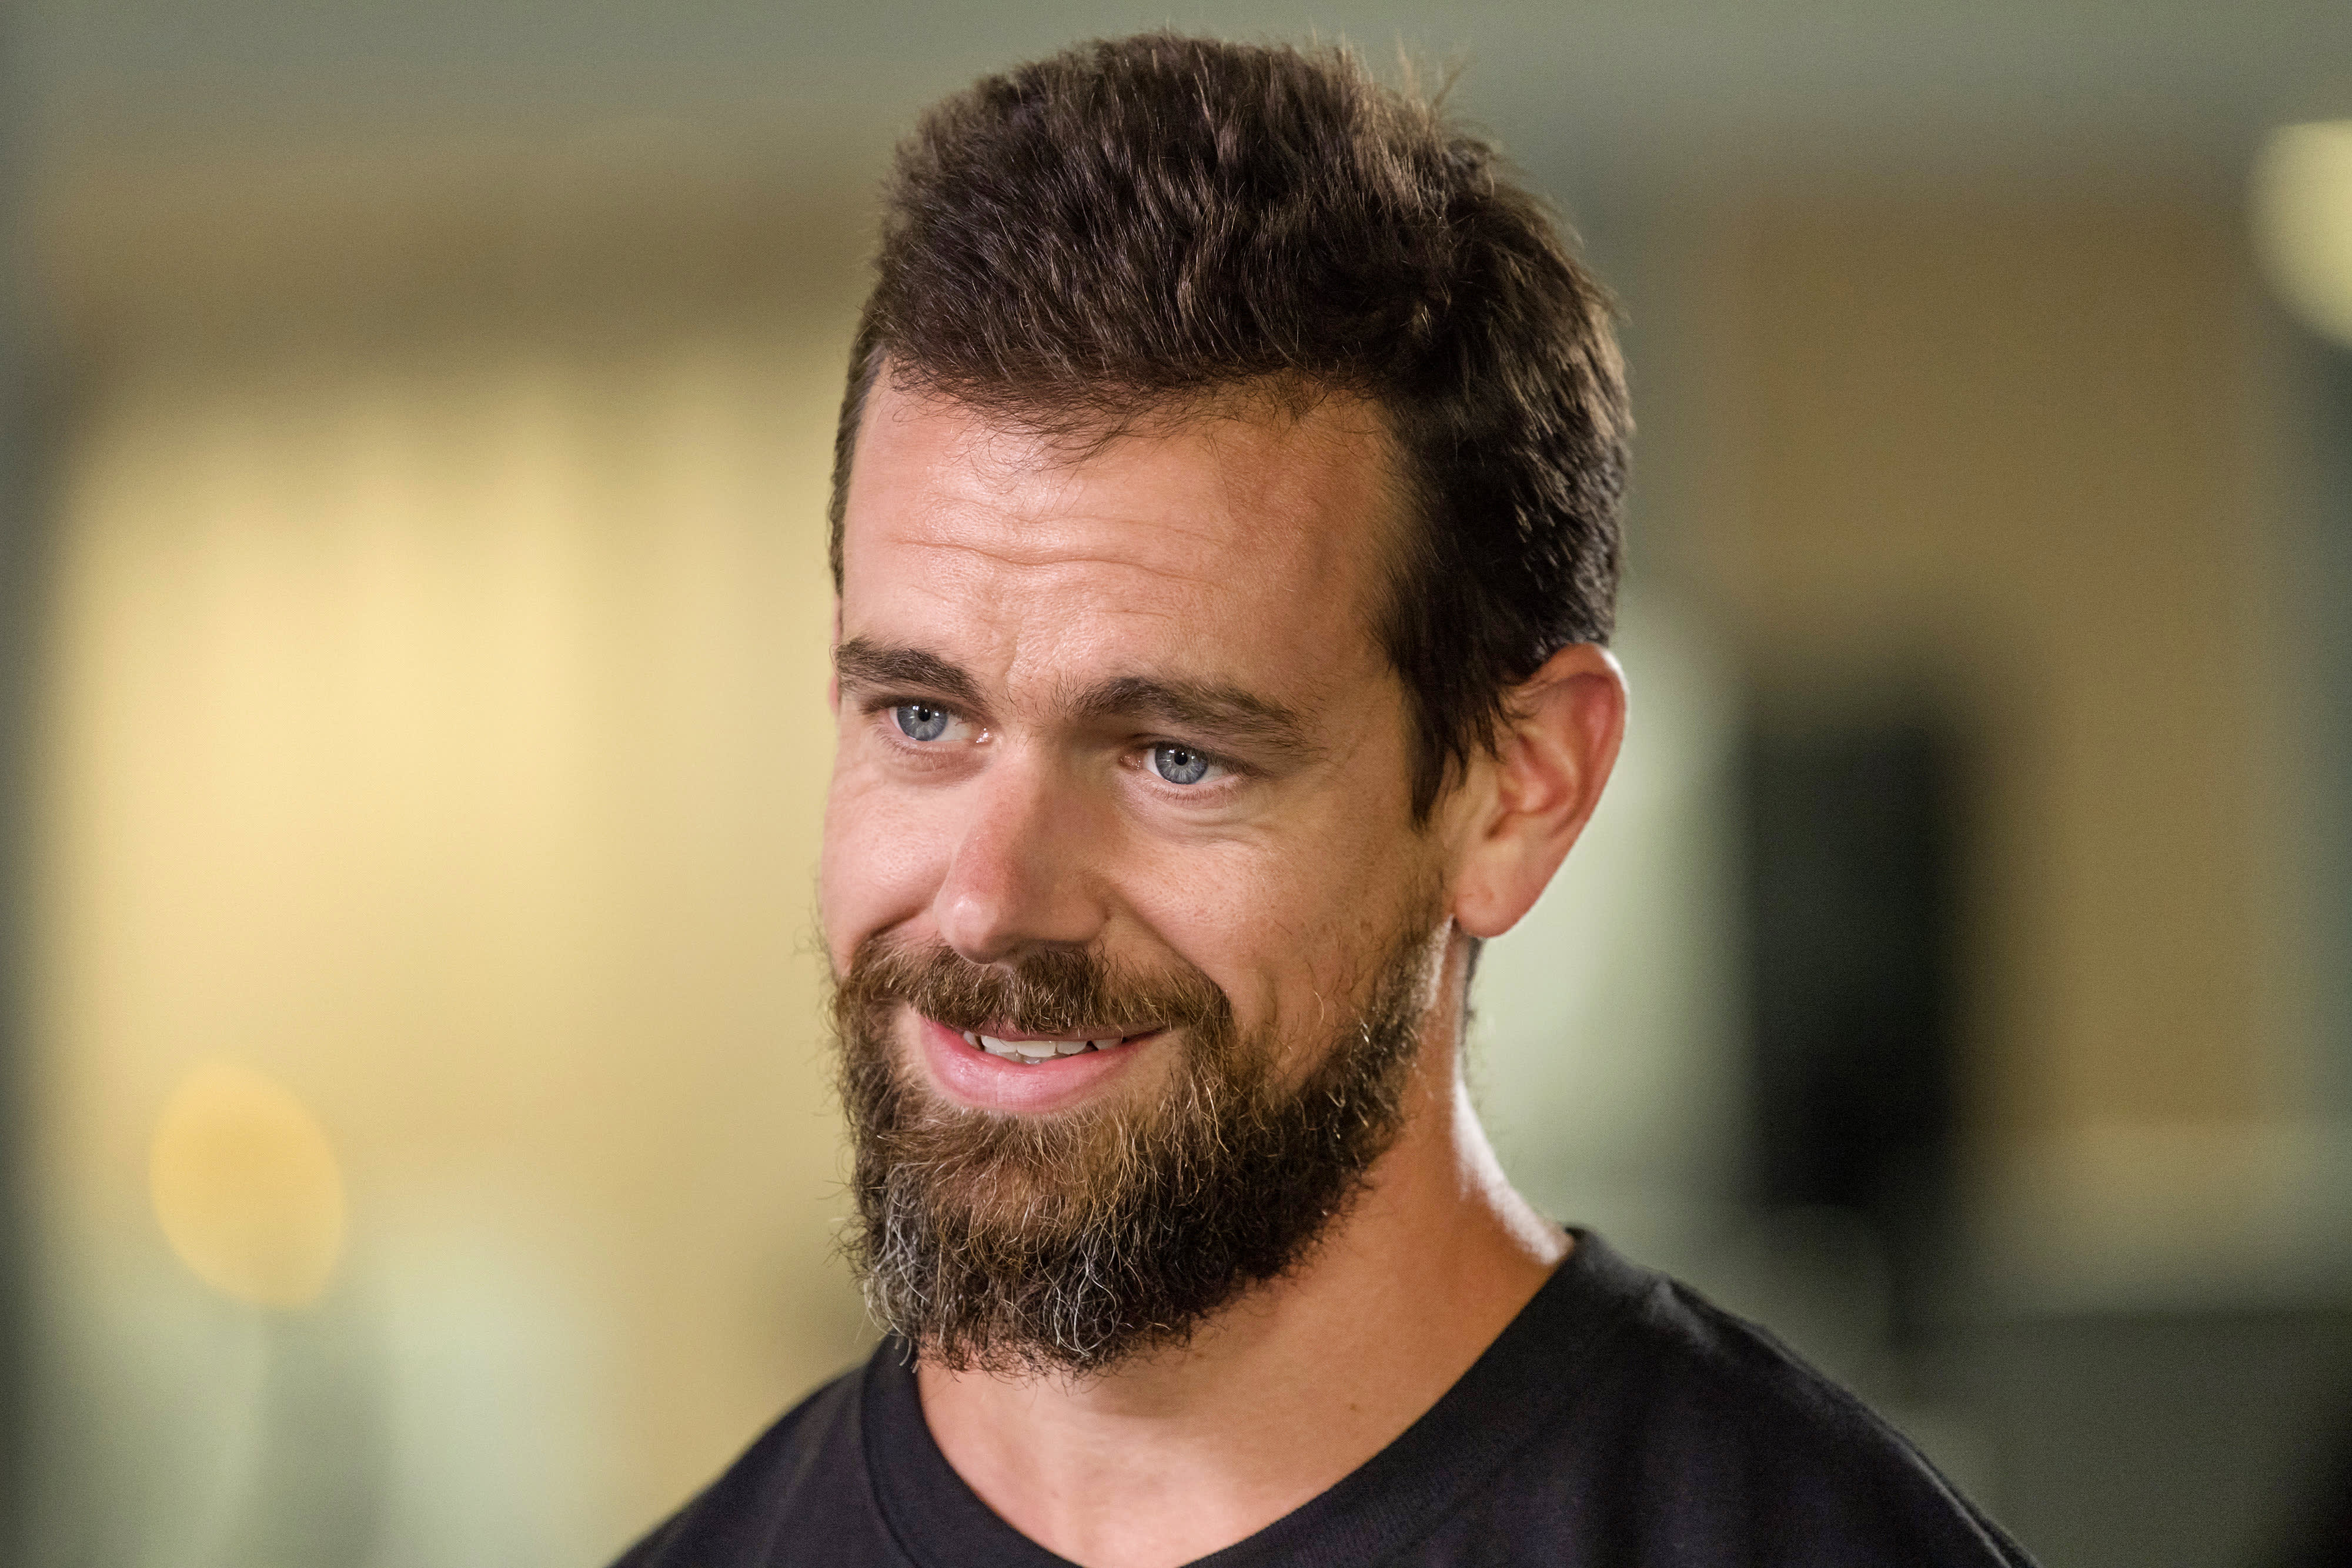 Billionaire Jack Dorsey's 11 'wellness' habits: From no food all weekend to ice baths